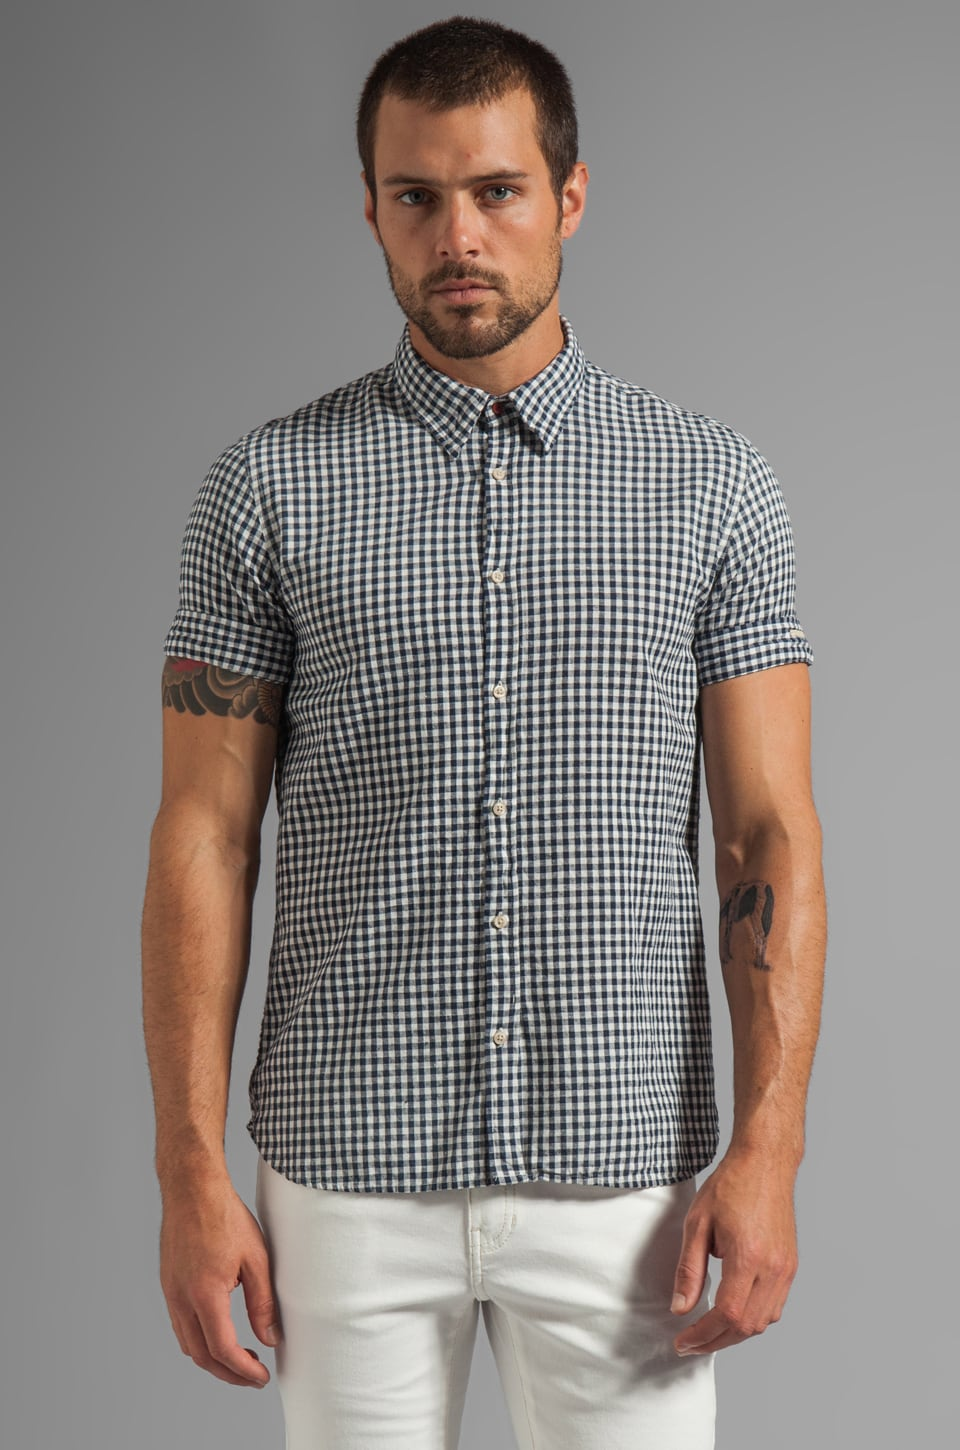 Scotch & Soda S/S Woven Shirt in Navy Check